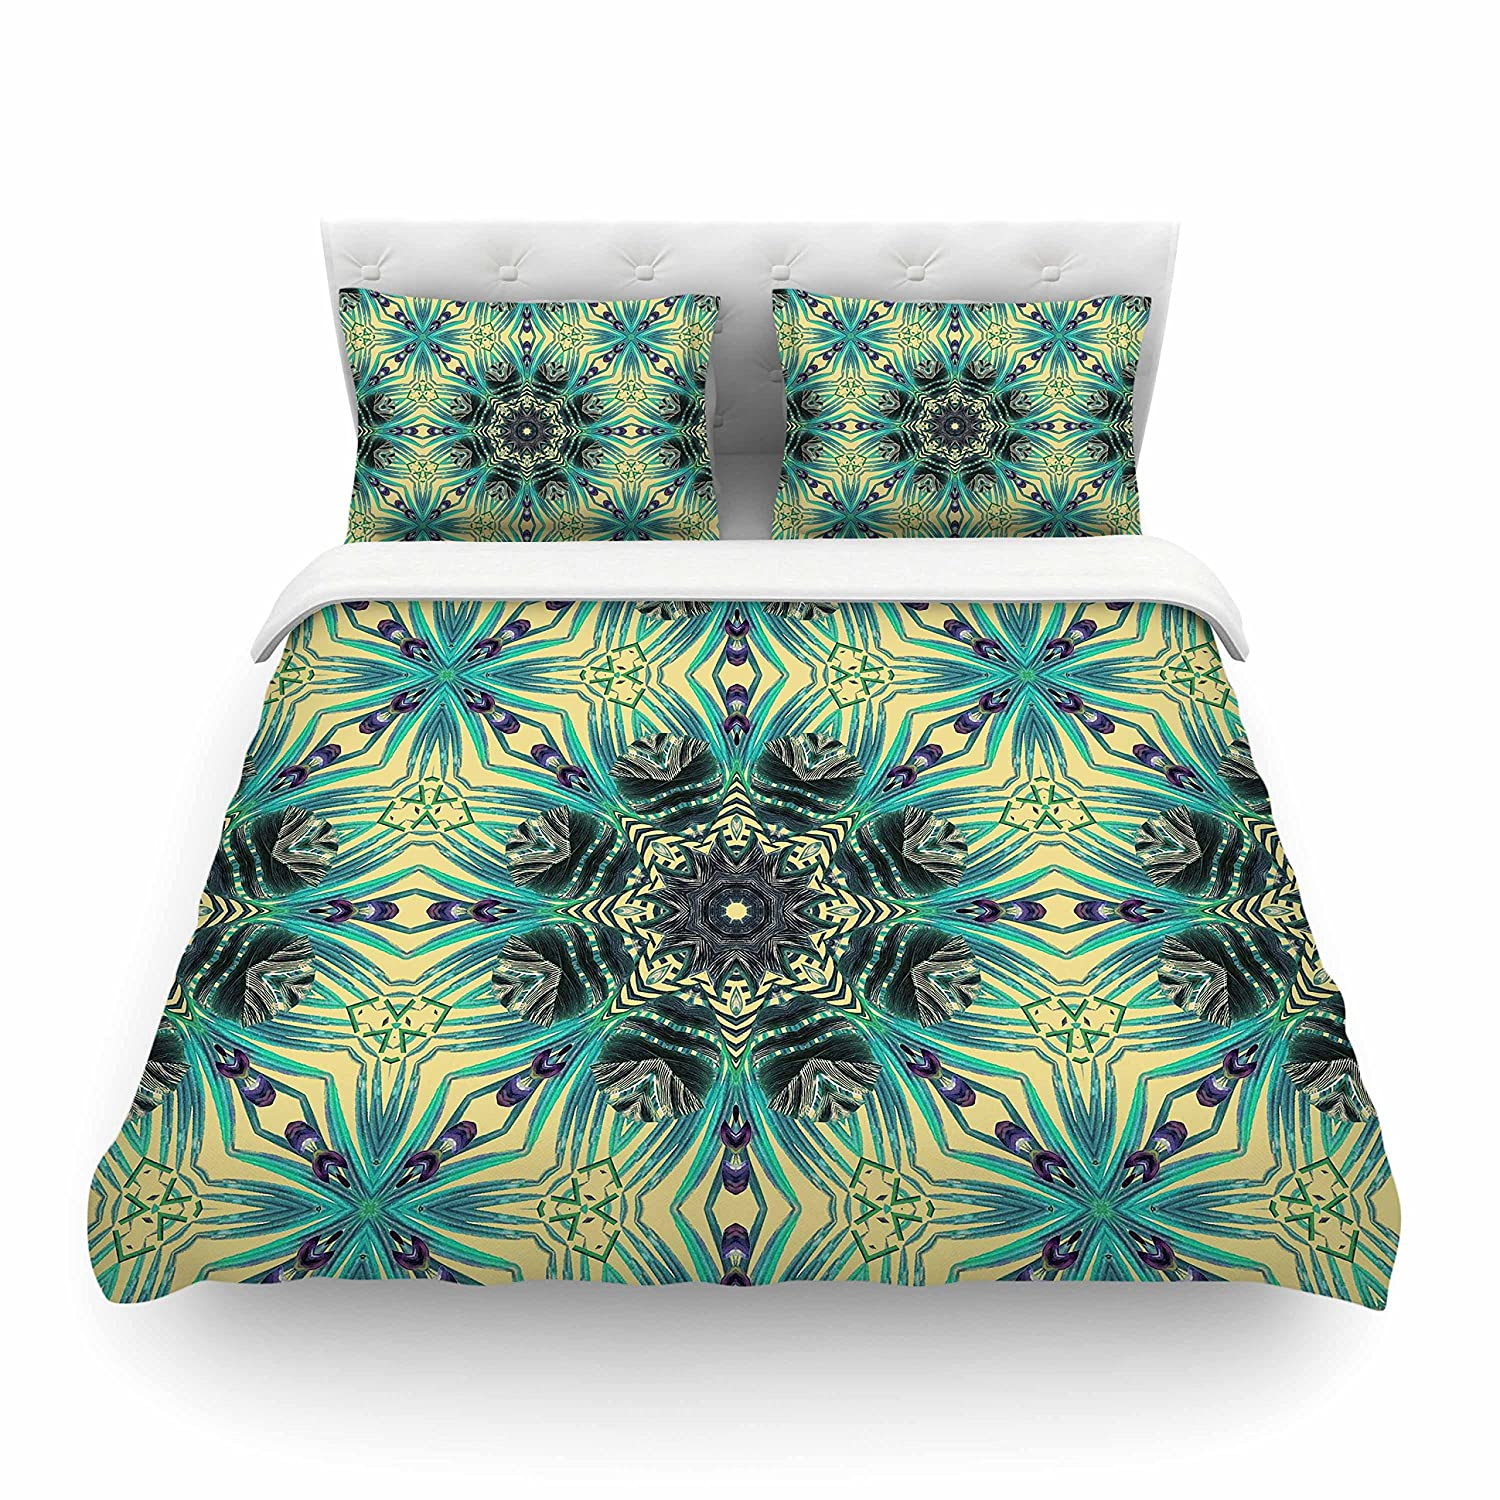 88 x 88, Kess InHouse BarmalisiRTB Keep Yourself Featherweight Queen Duvet Cover